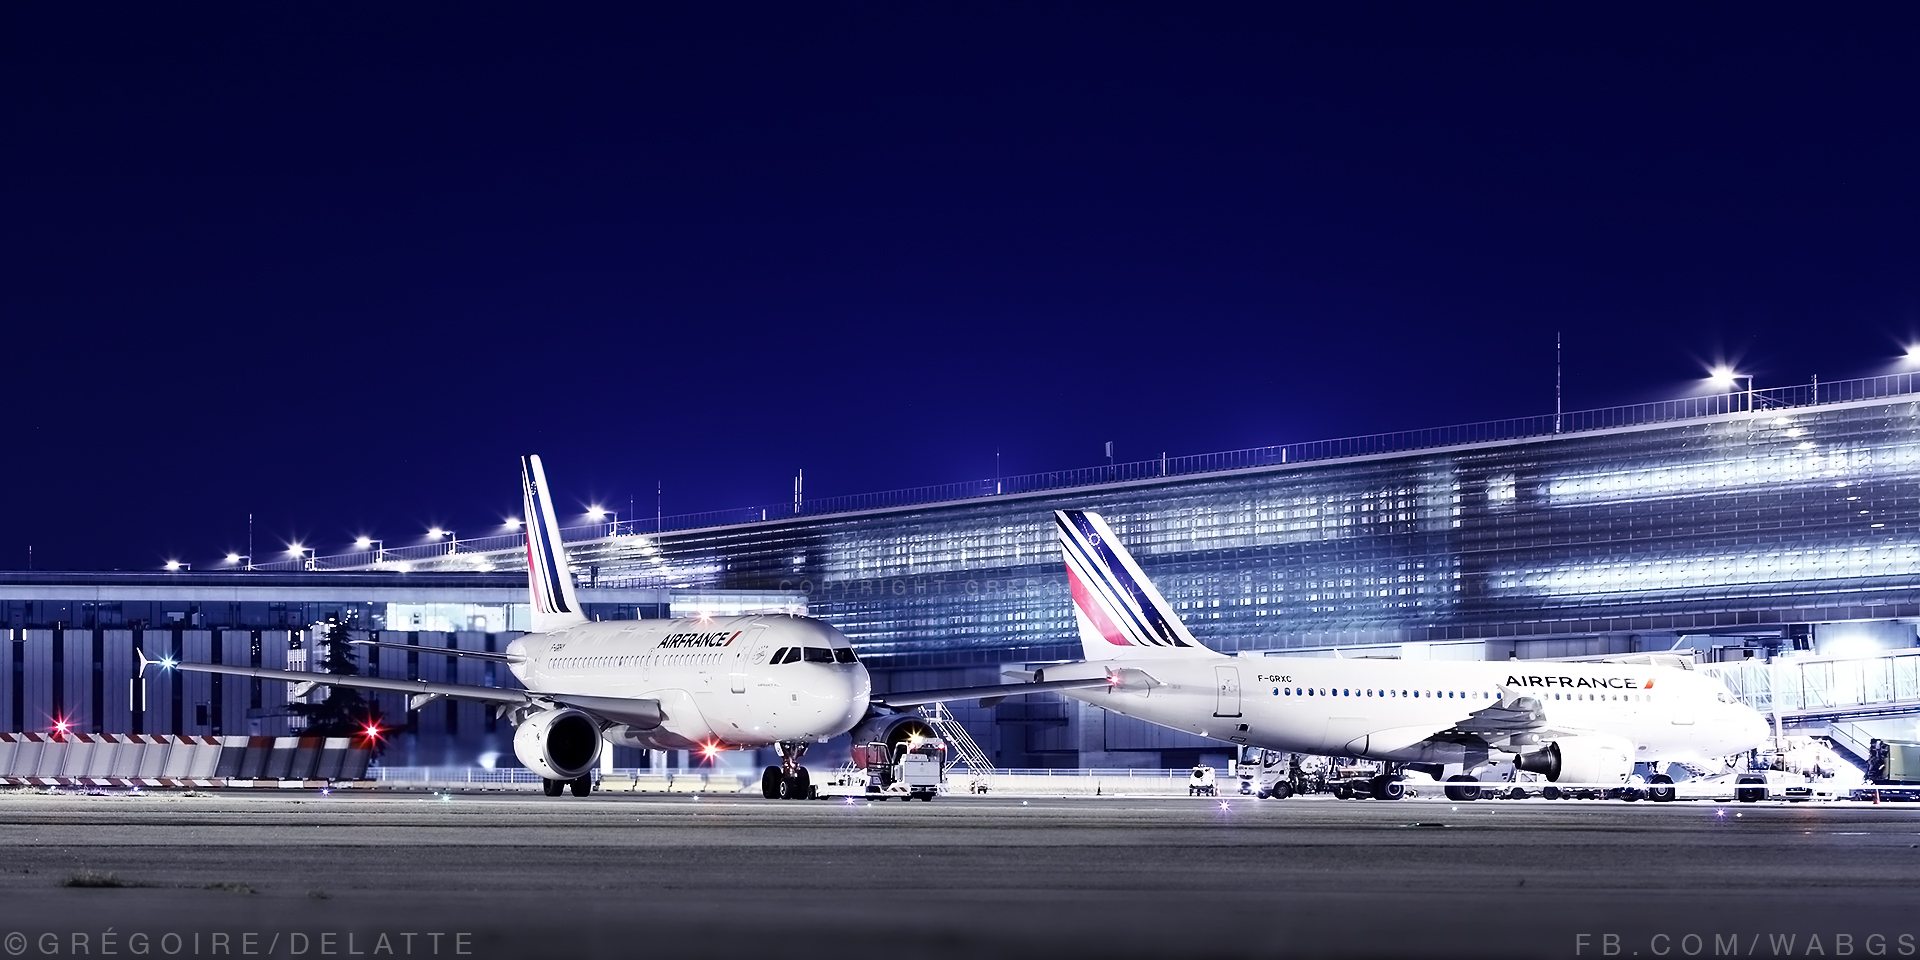 Night Atmosphere at Paris CDG